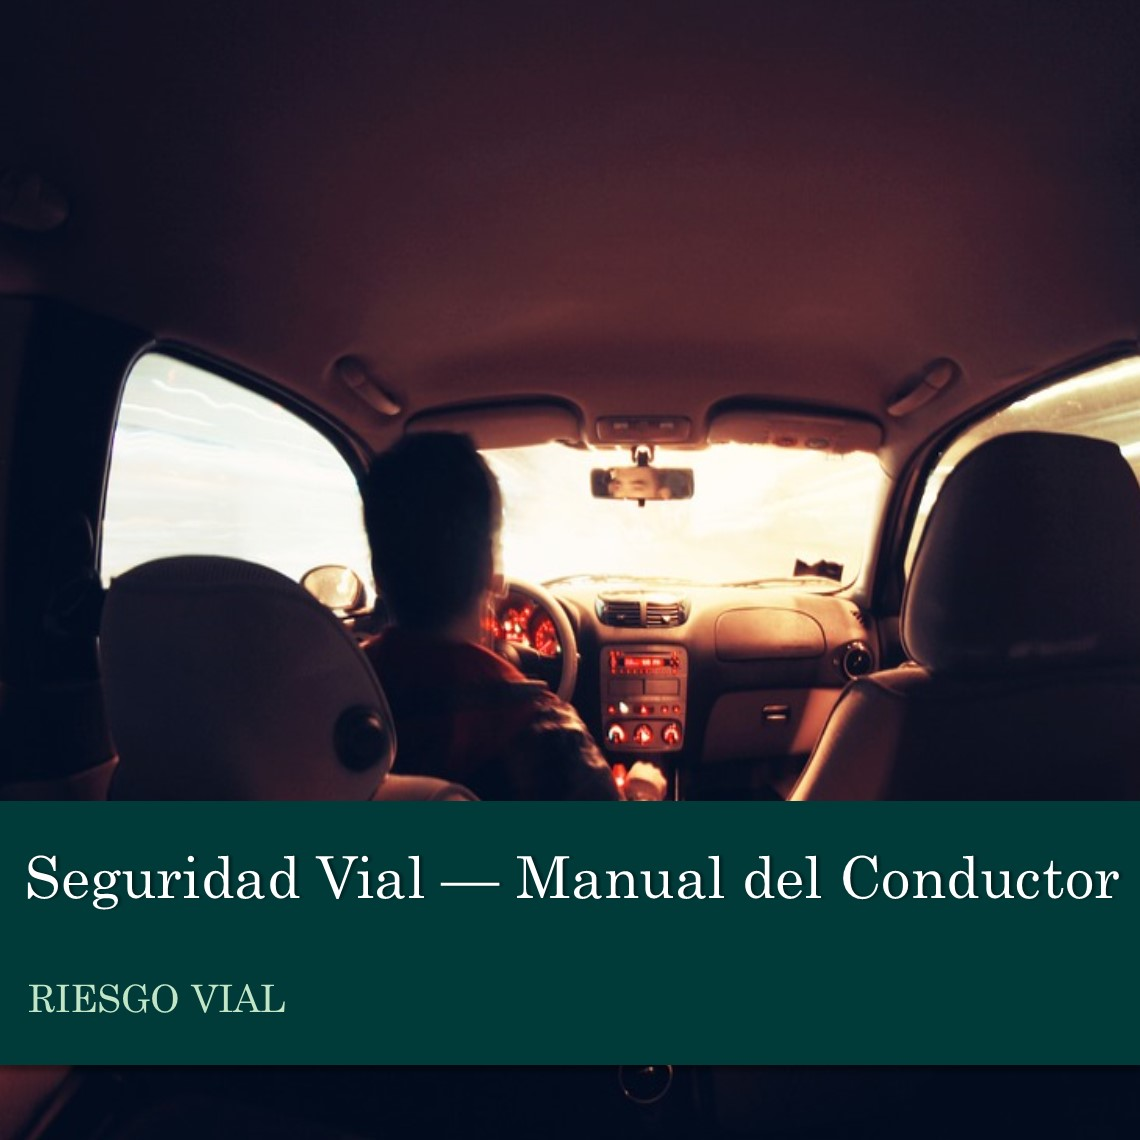 Seguridad Vial - Manual Conductor